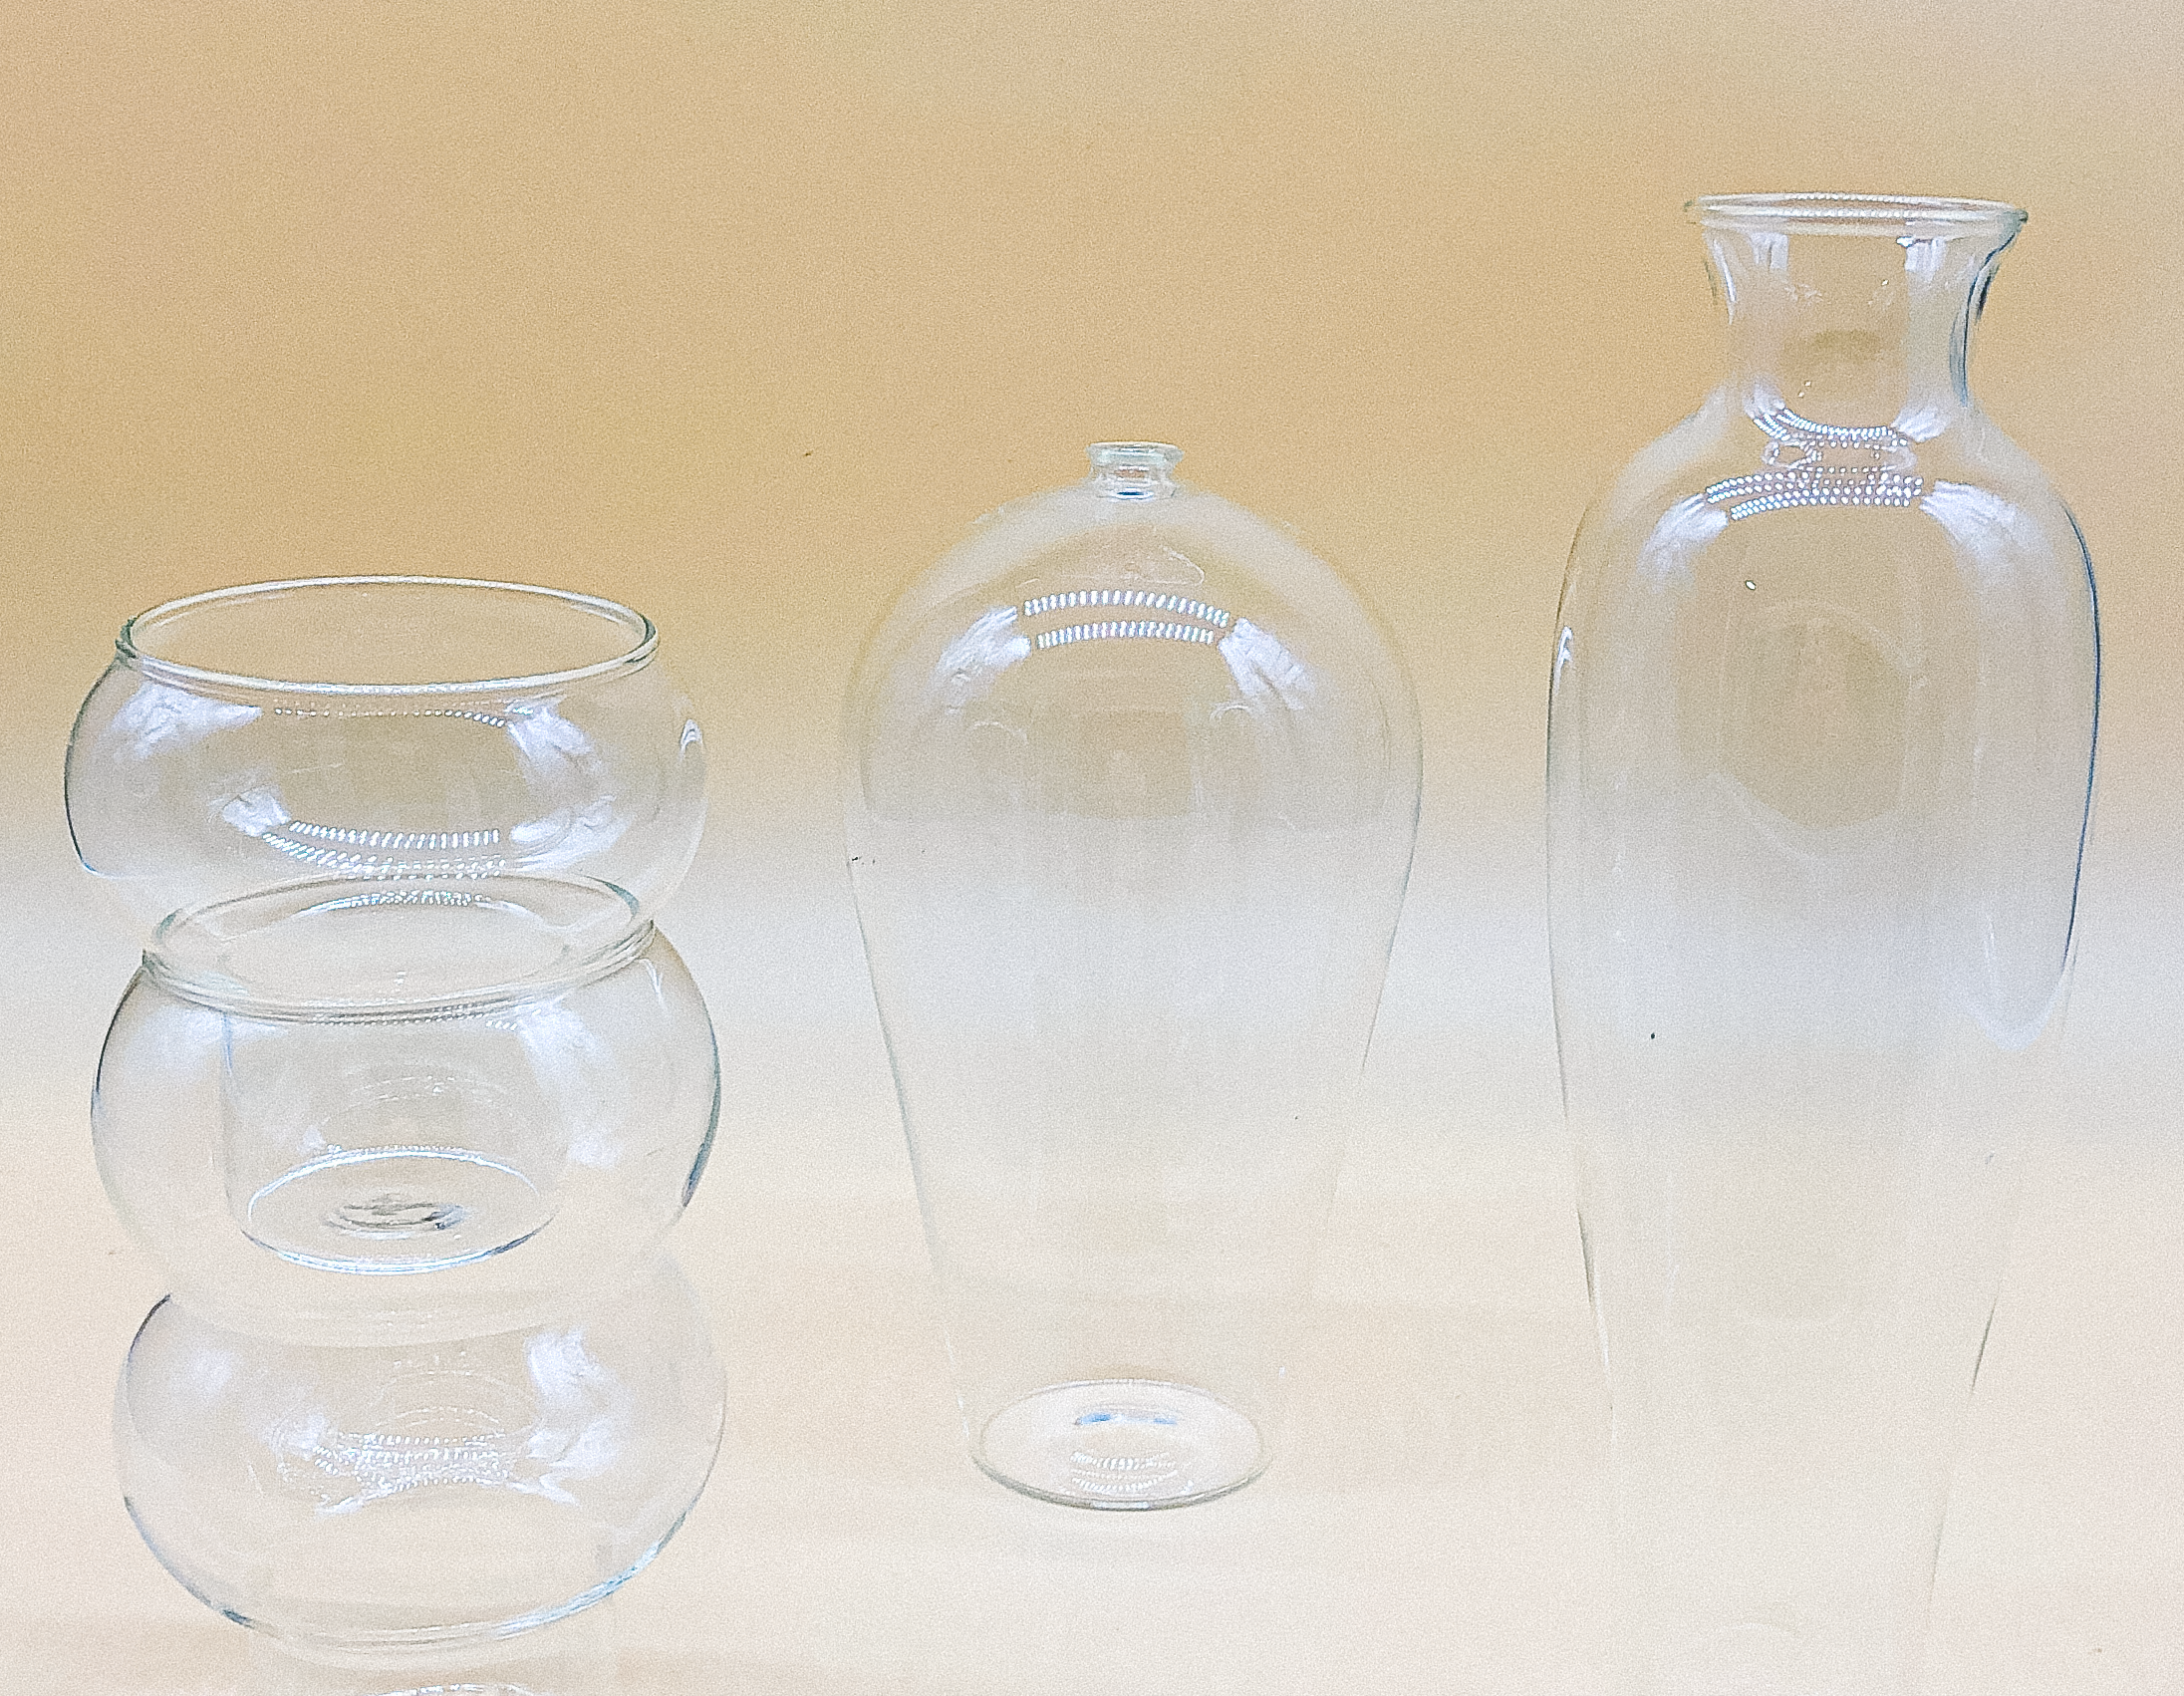 Bubble Carafe Set by PROSE Tabletop